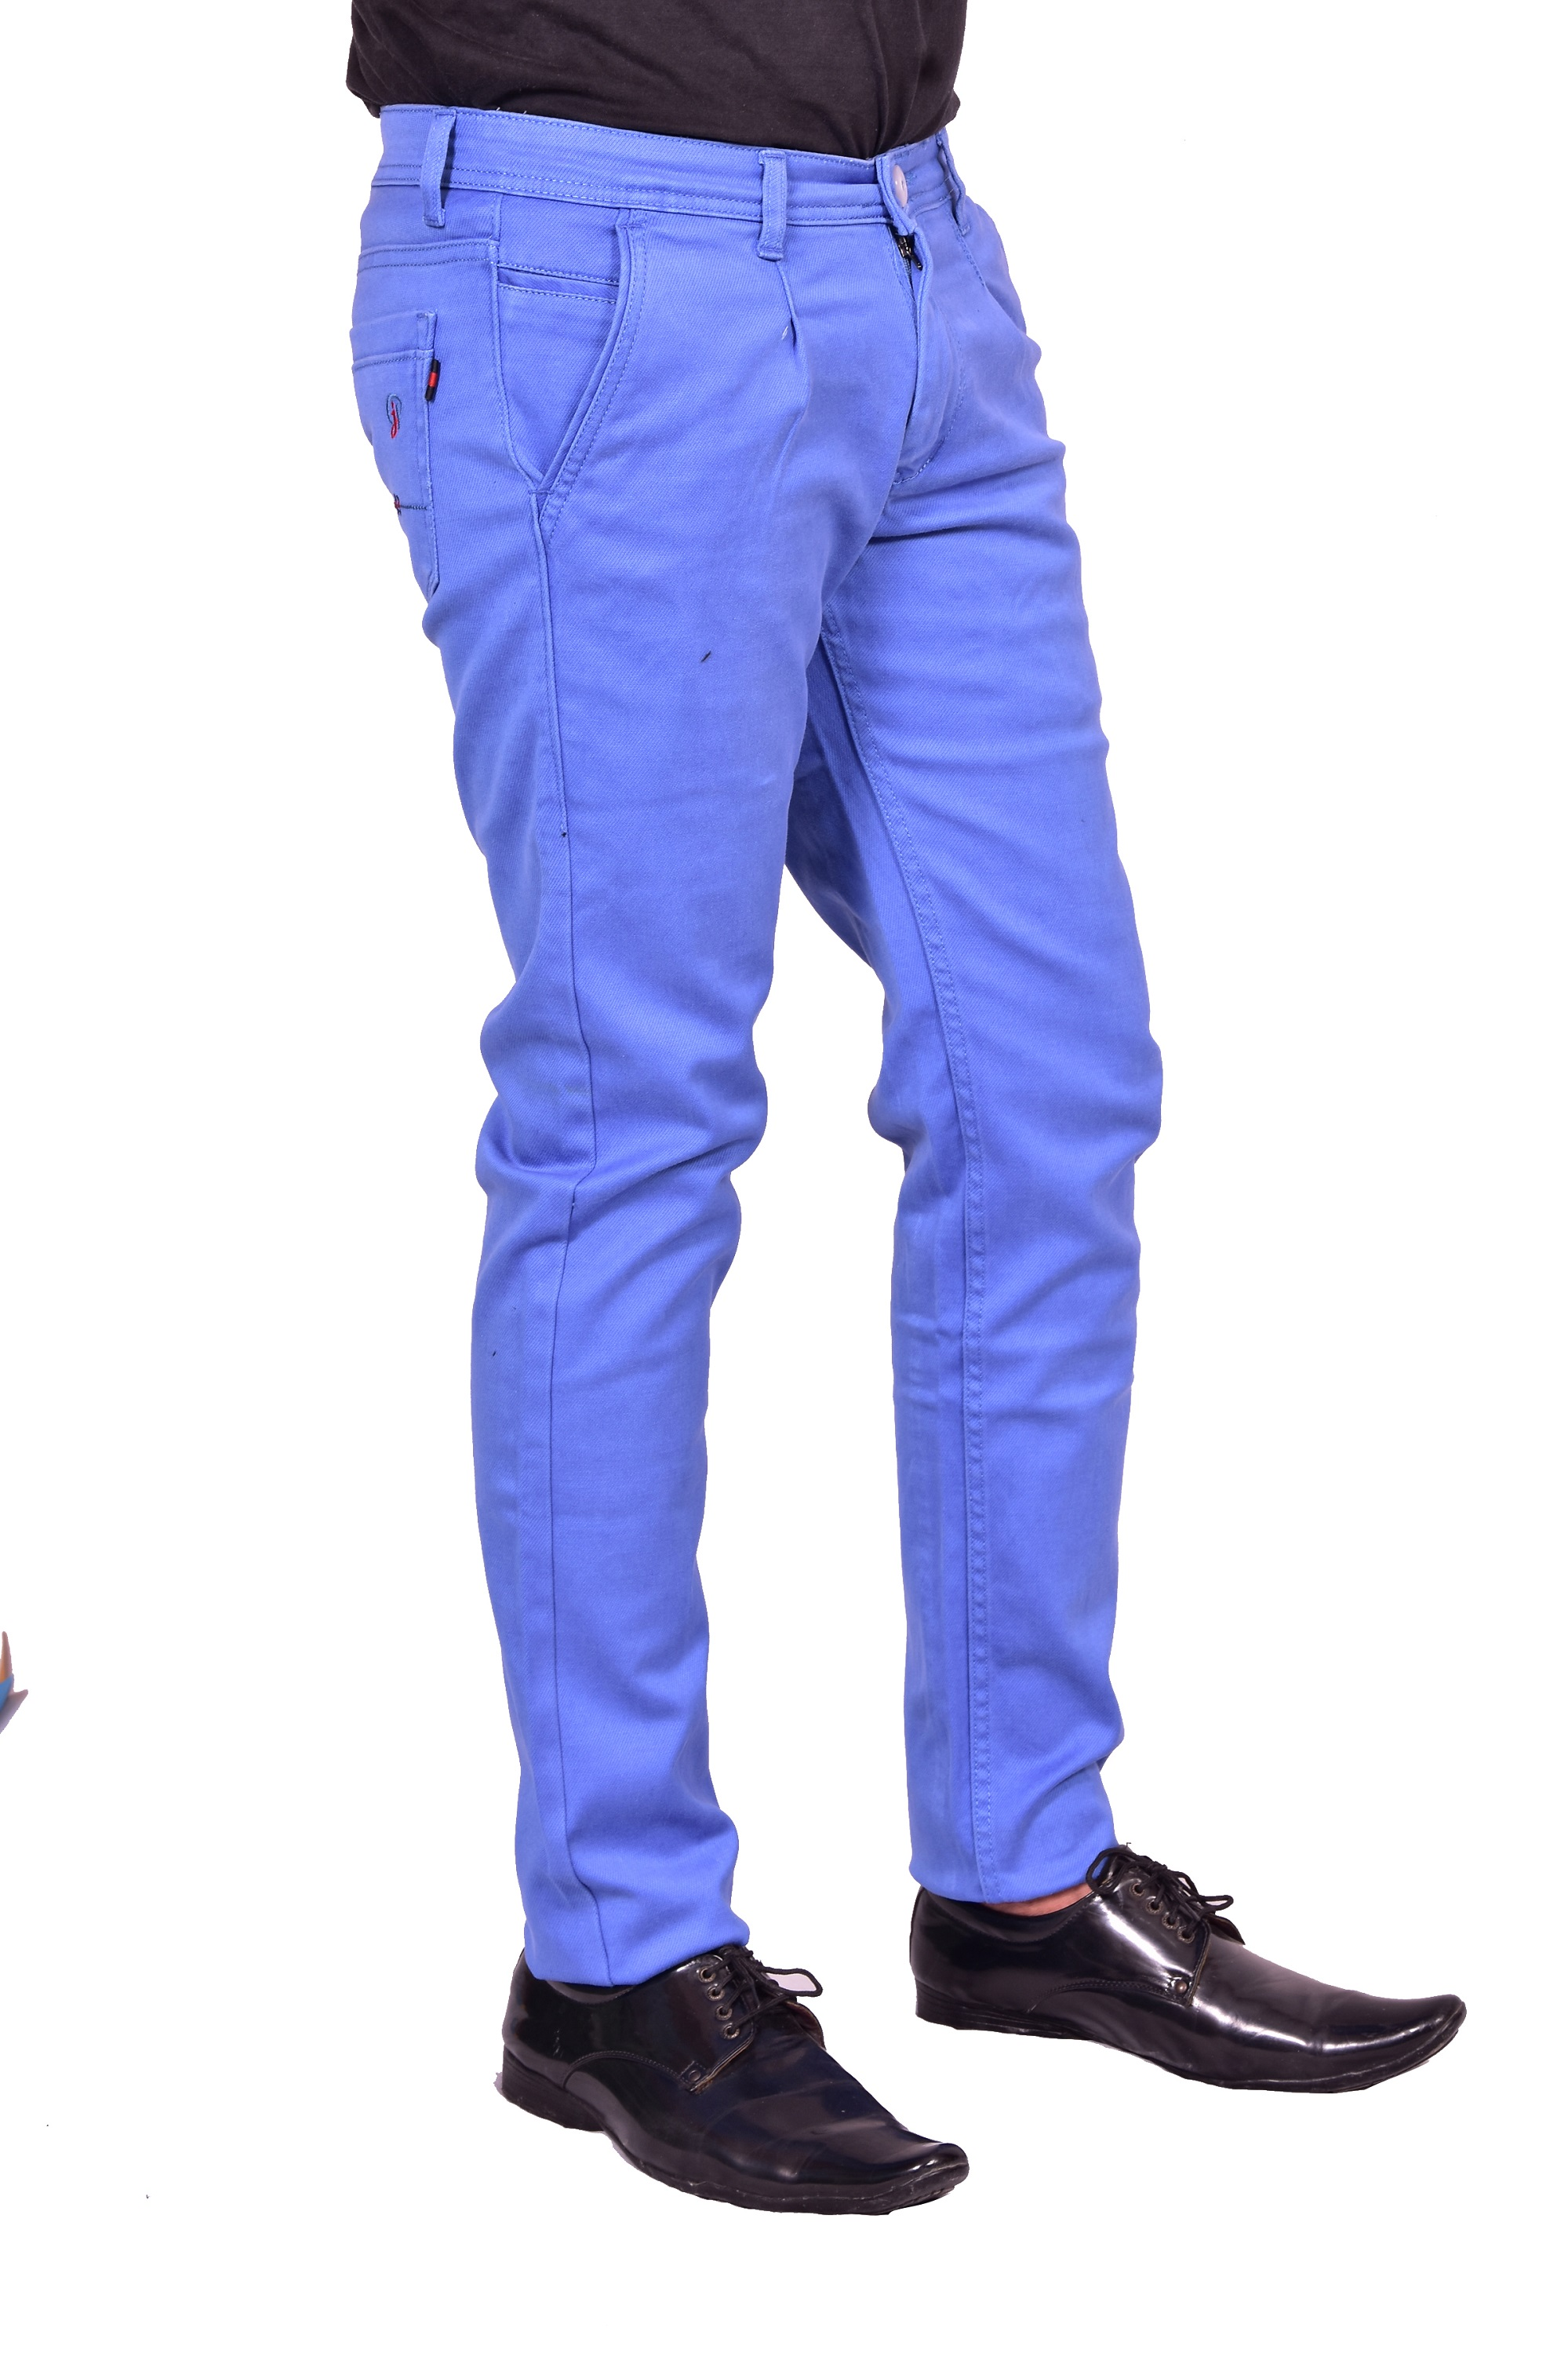 Just Trousers Sky Blue Regular Men sky Blue Jeans